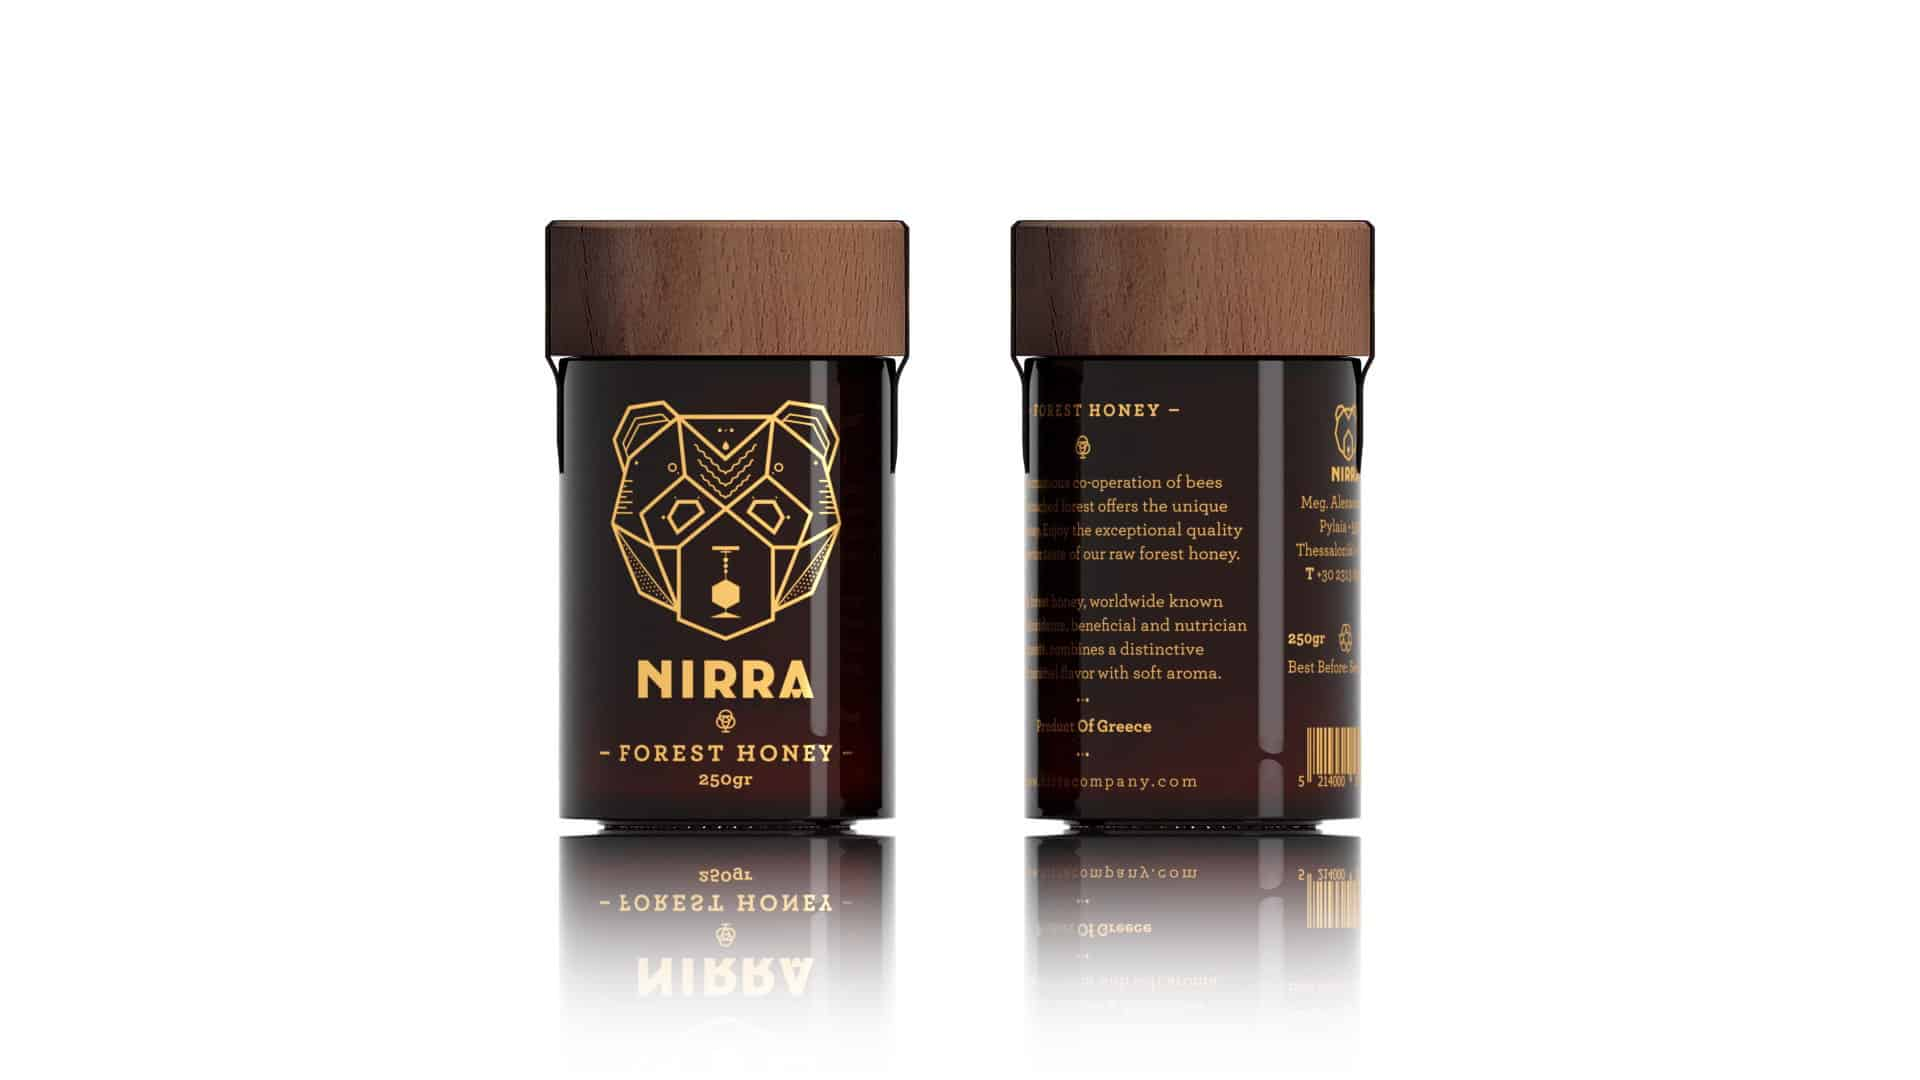 Nirra Forest Honey 1